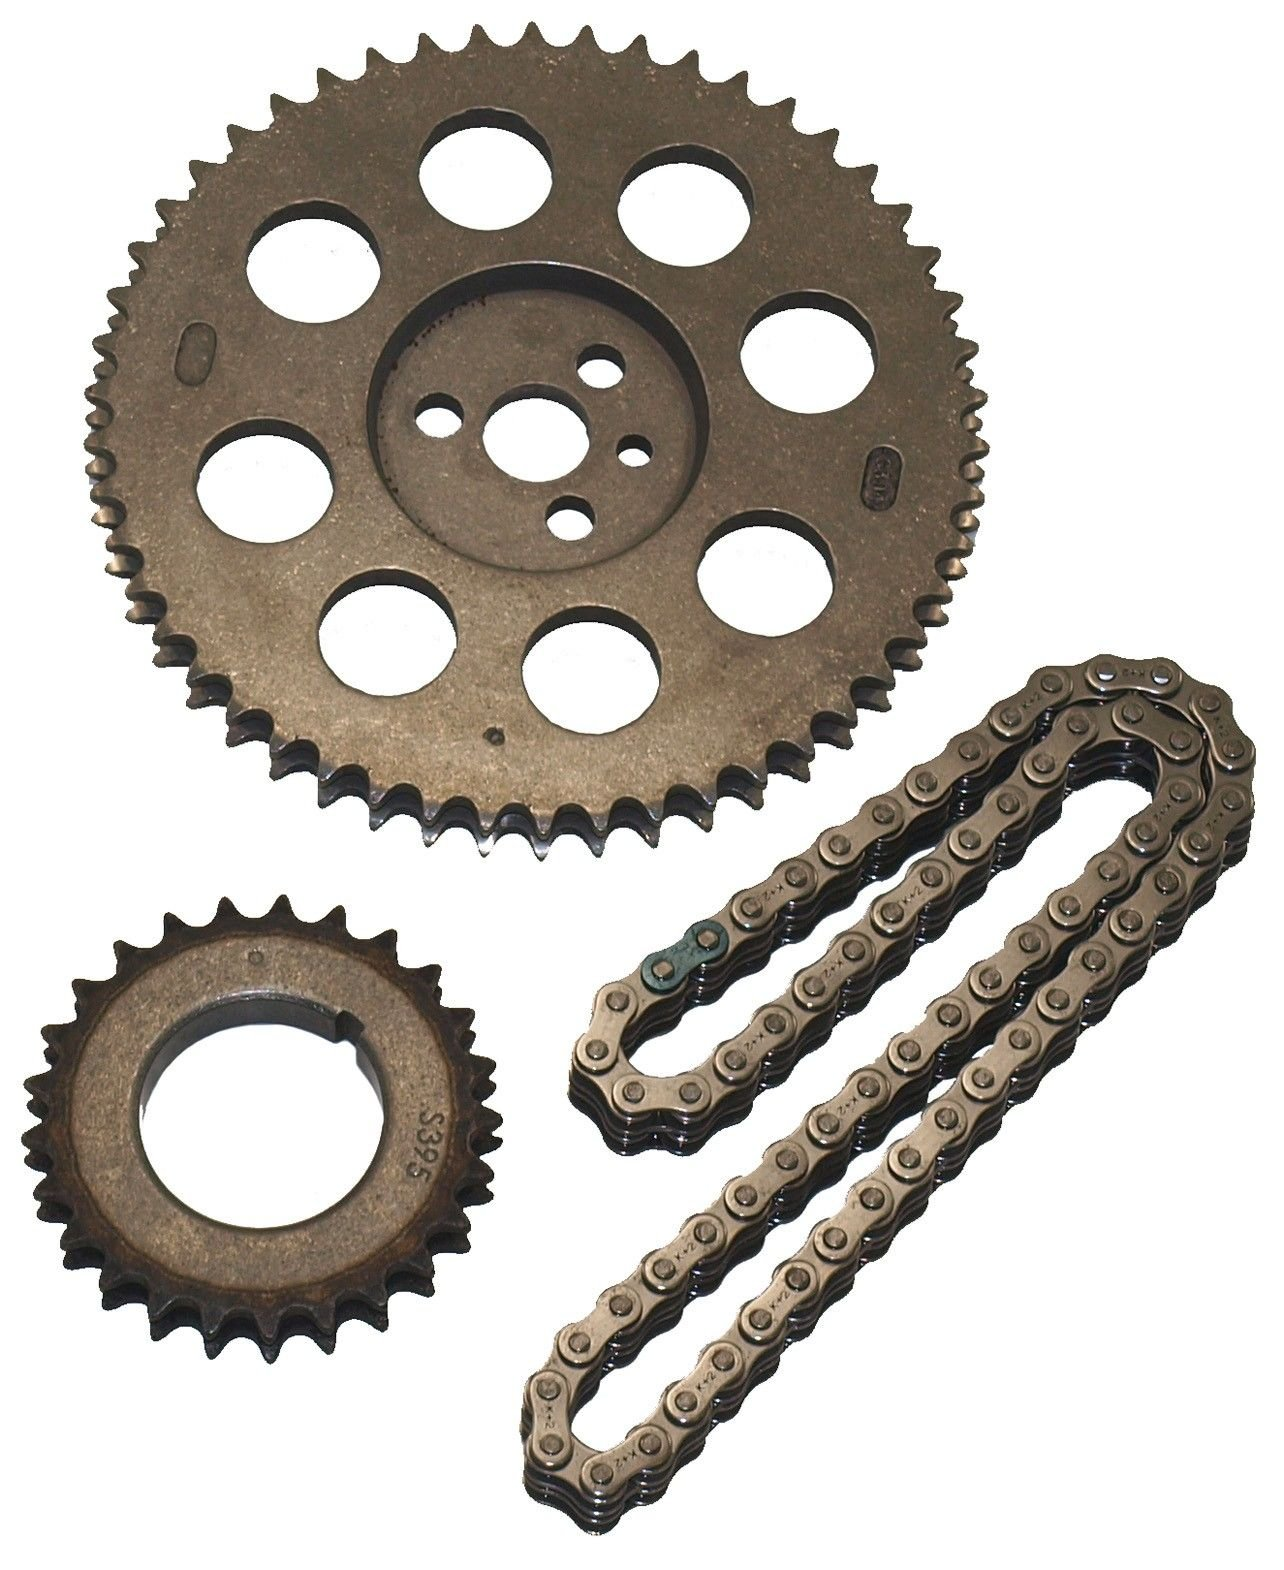 Chevrolet Caprice Engine Timing Set Replacement (Cloyes